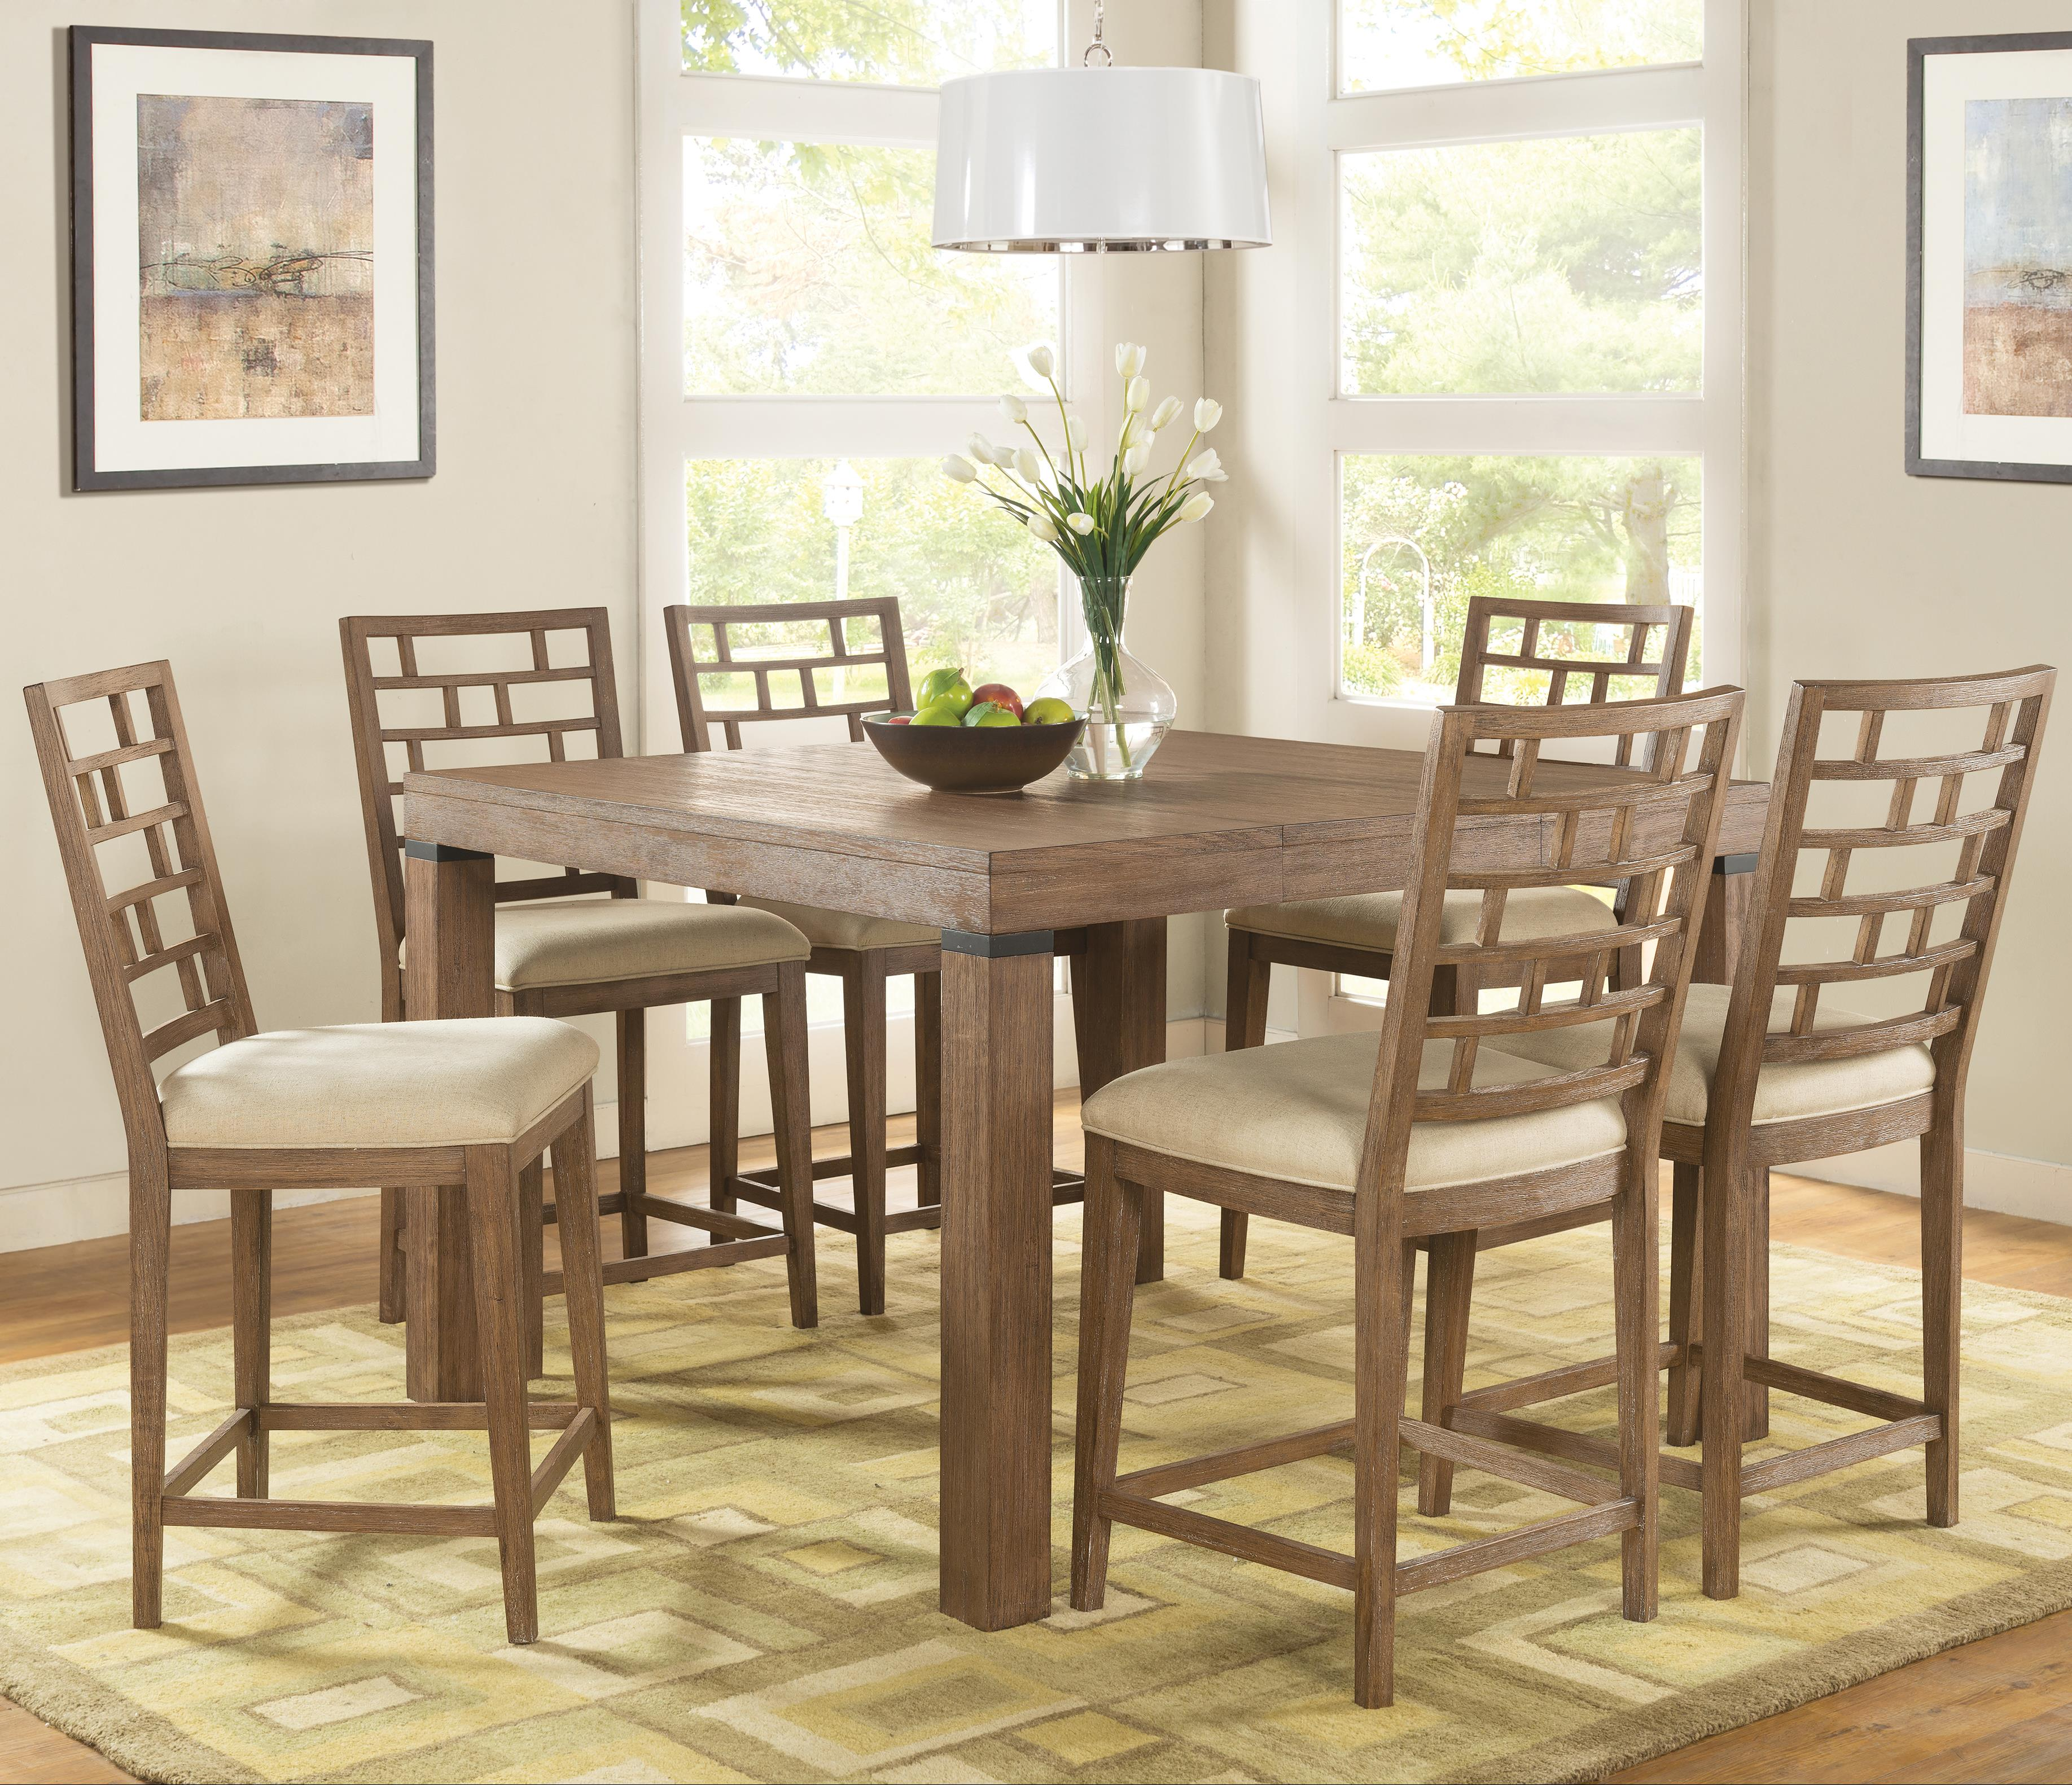 Riverside furniture mirabelle 7 piece counter height table for Hudsons furniture